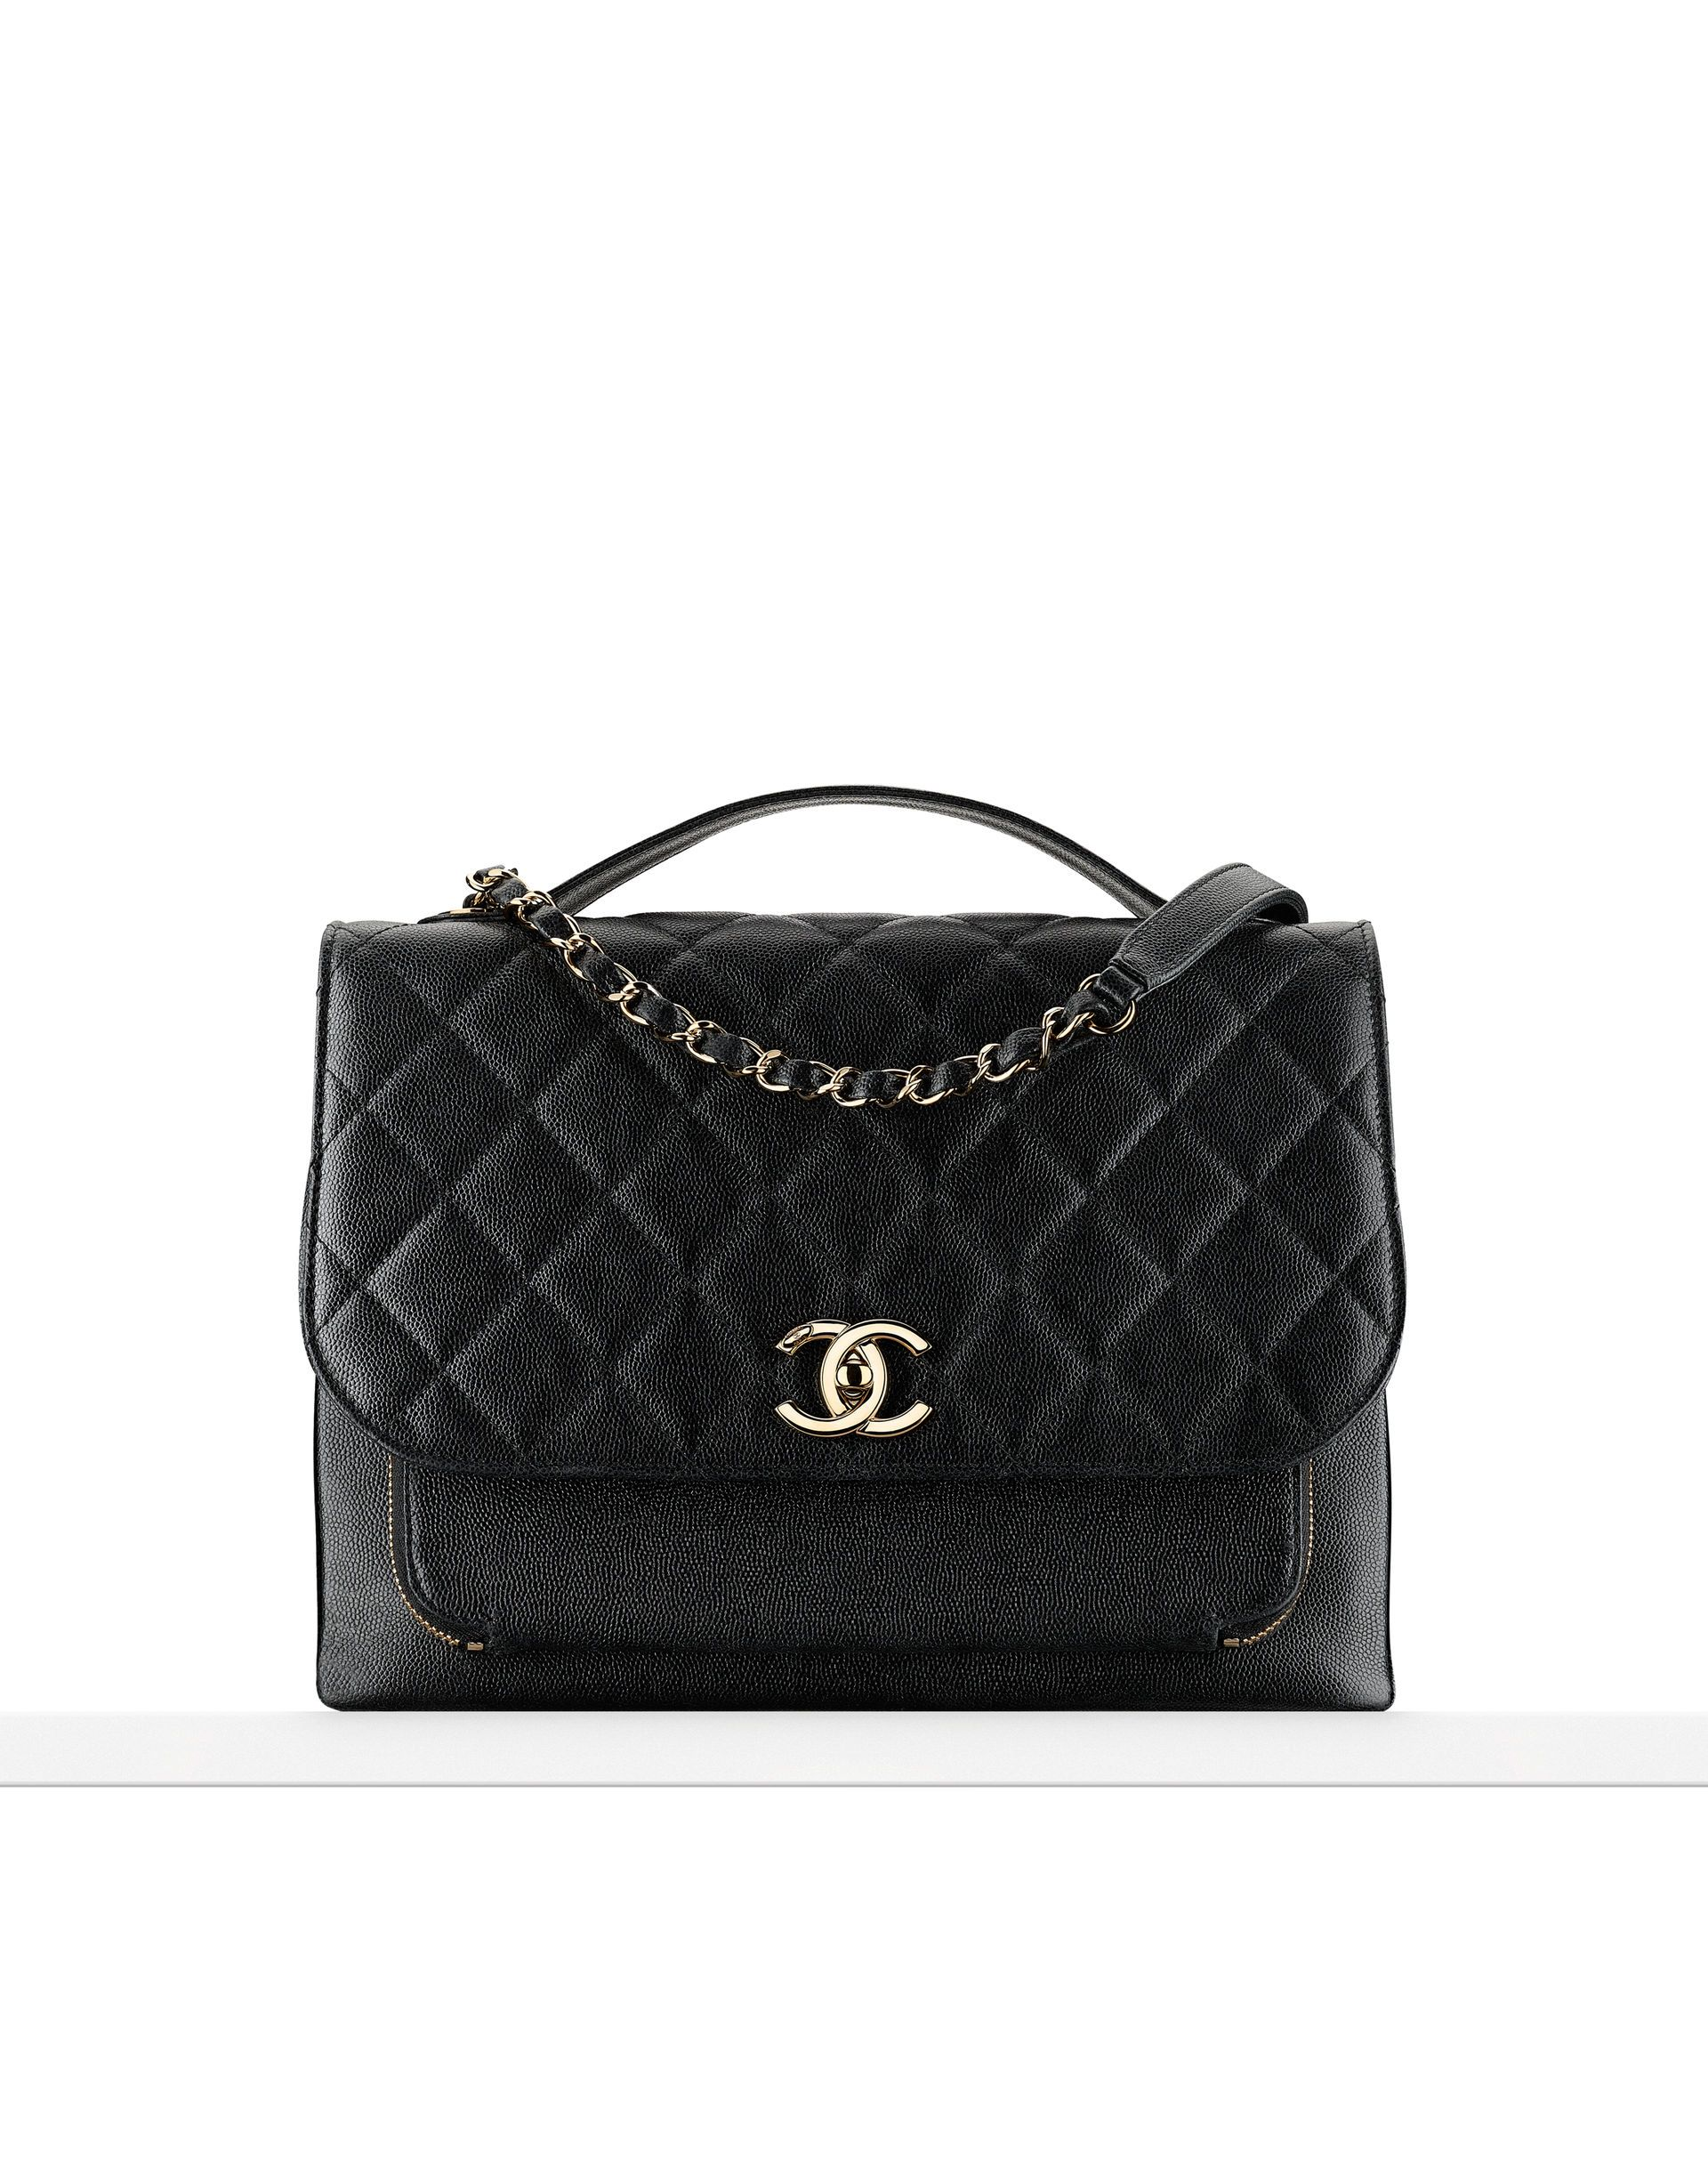 2de1f6c78a Pin by Nina Nicolas Fiefe on clasic clean cut | Chanel, Bags, Chanel ...